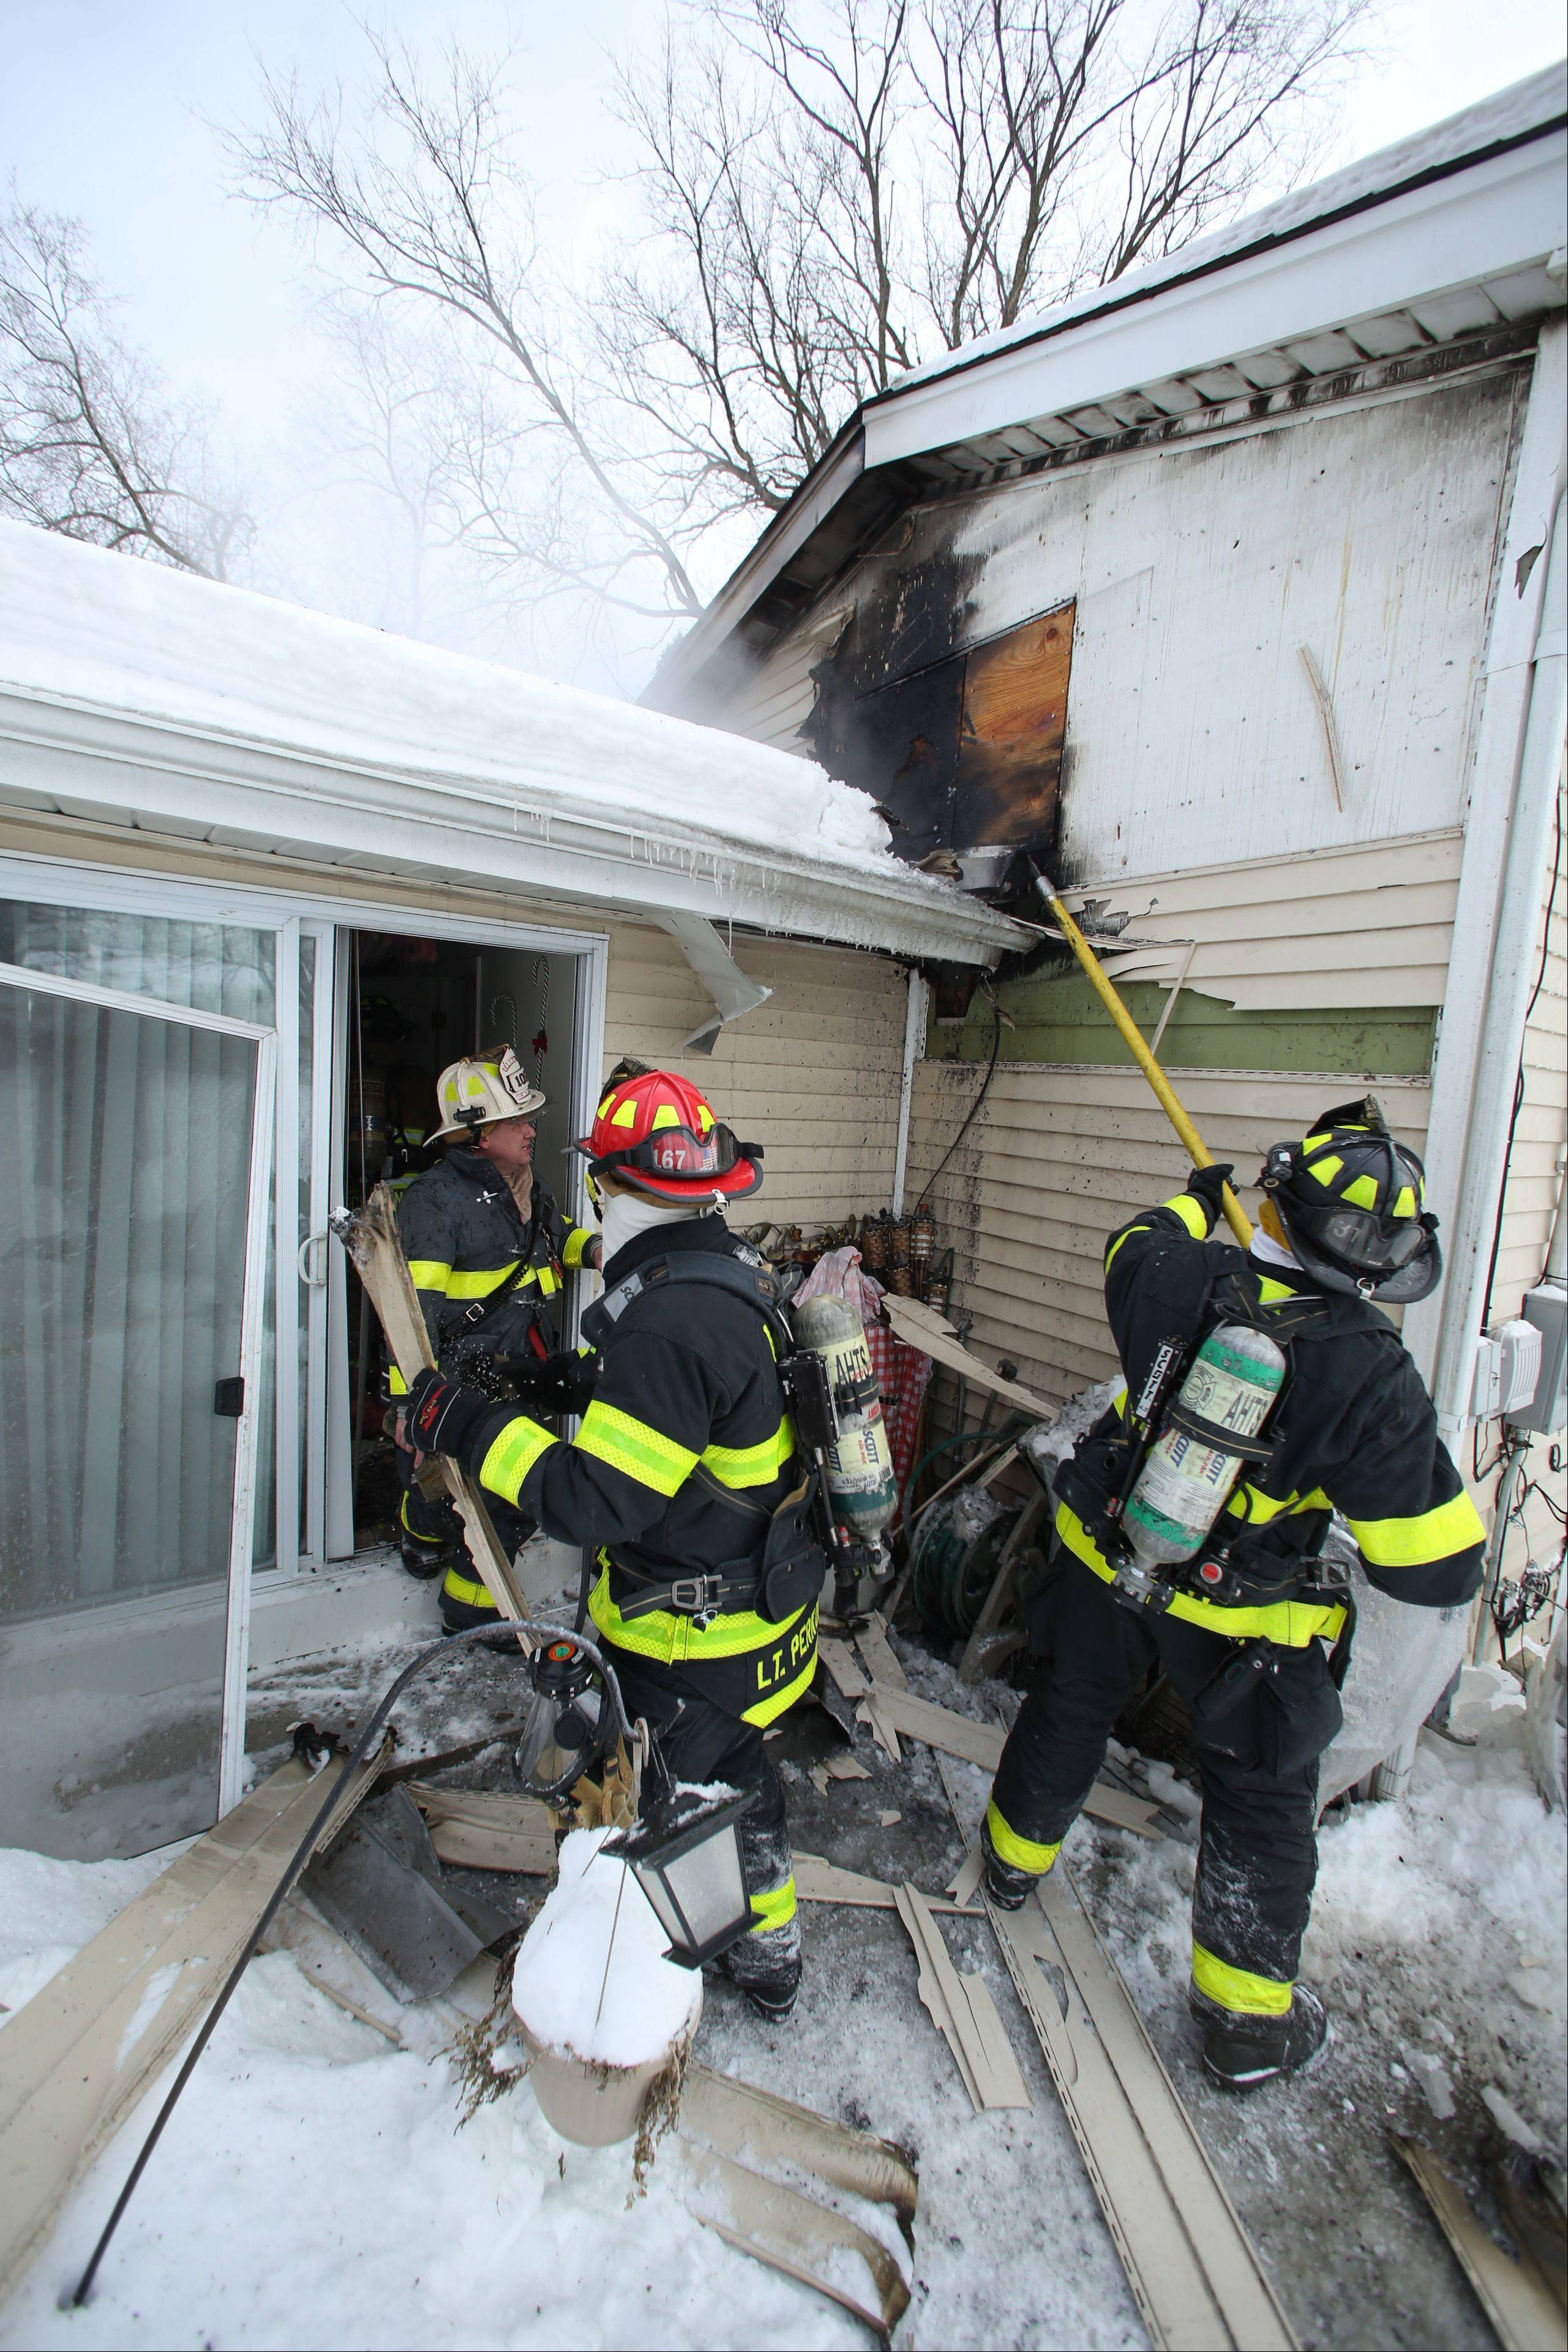 Arlington Heights firefighters on Tuesday afternoon attacked a fire from the rear porch of a home on the 1600 block of Yale Avenue.